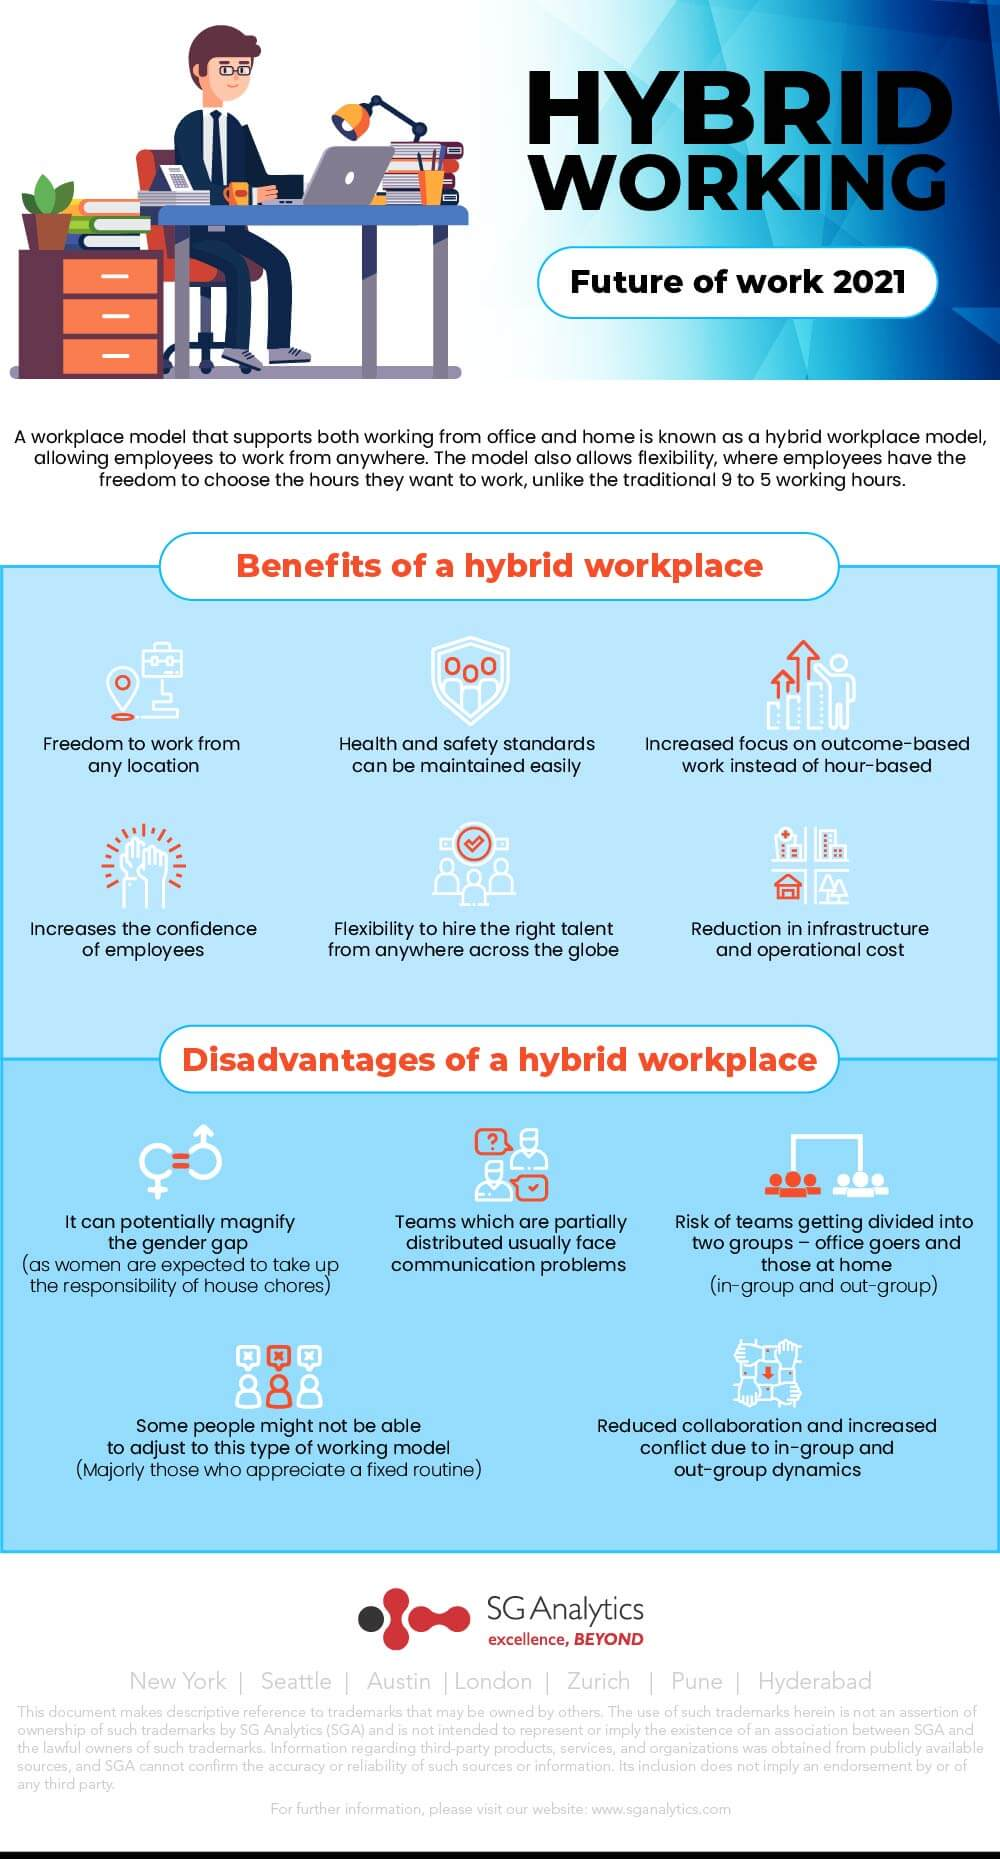 hybrid working – Future of work 2021